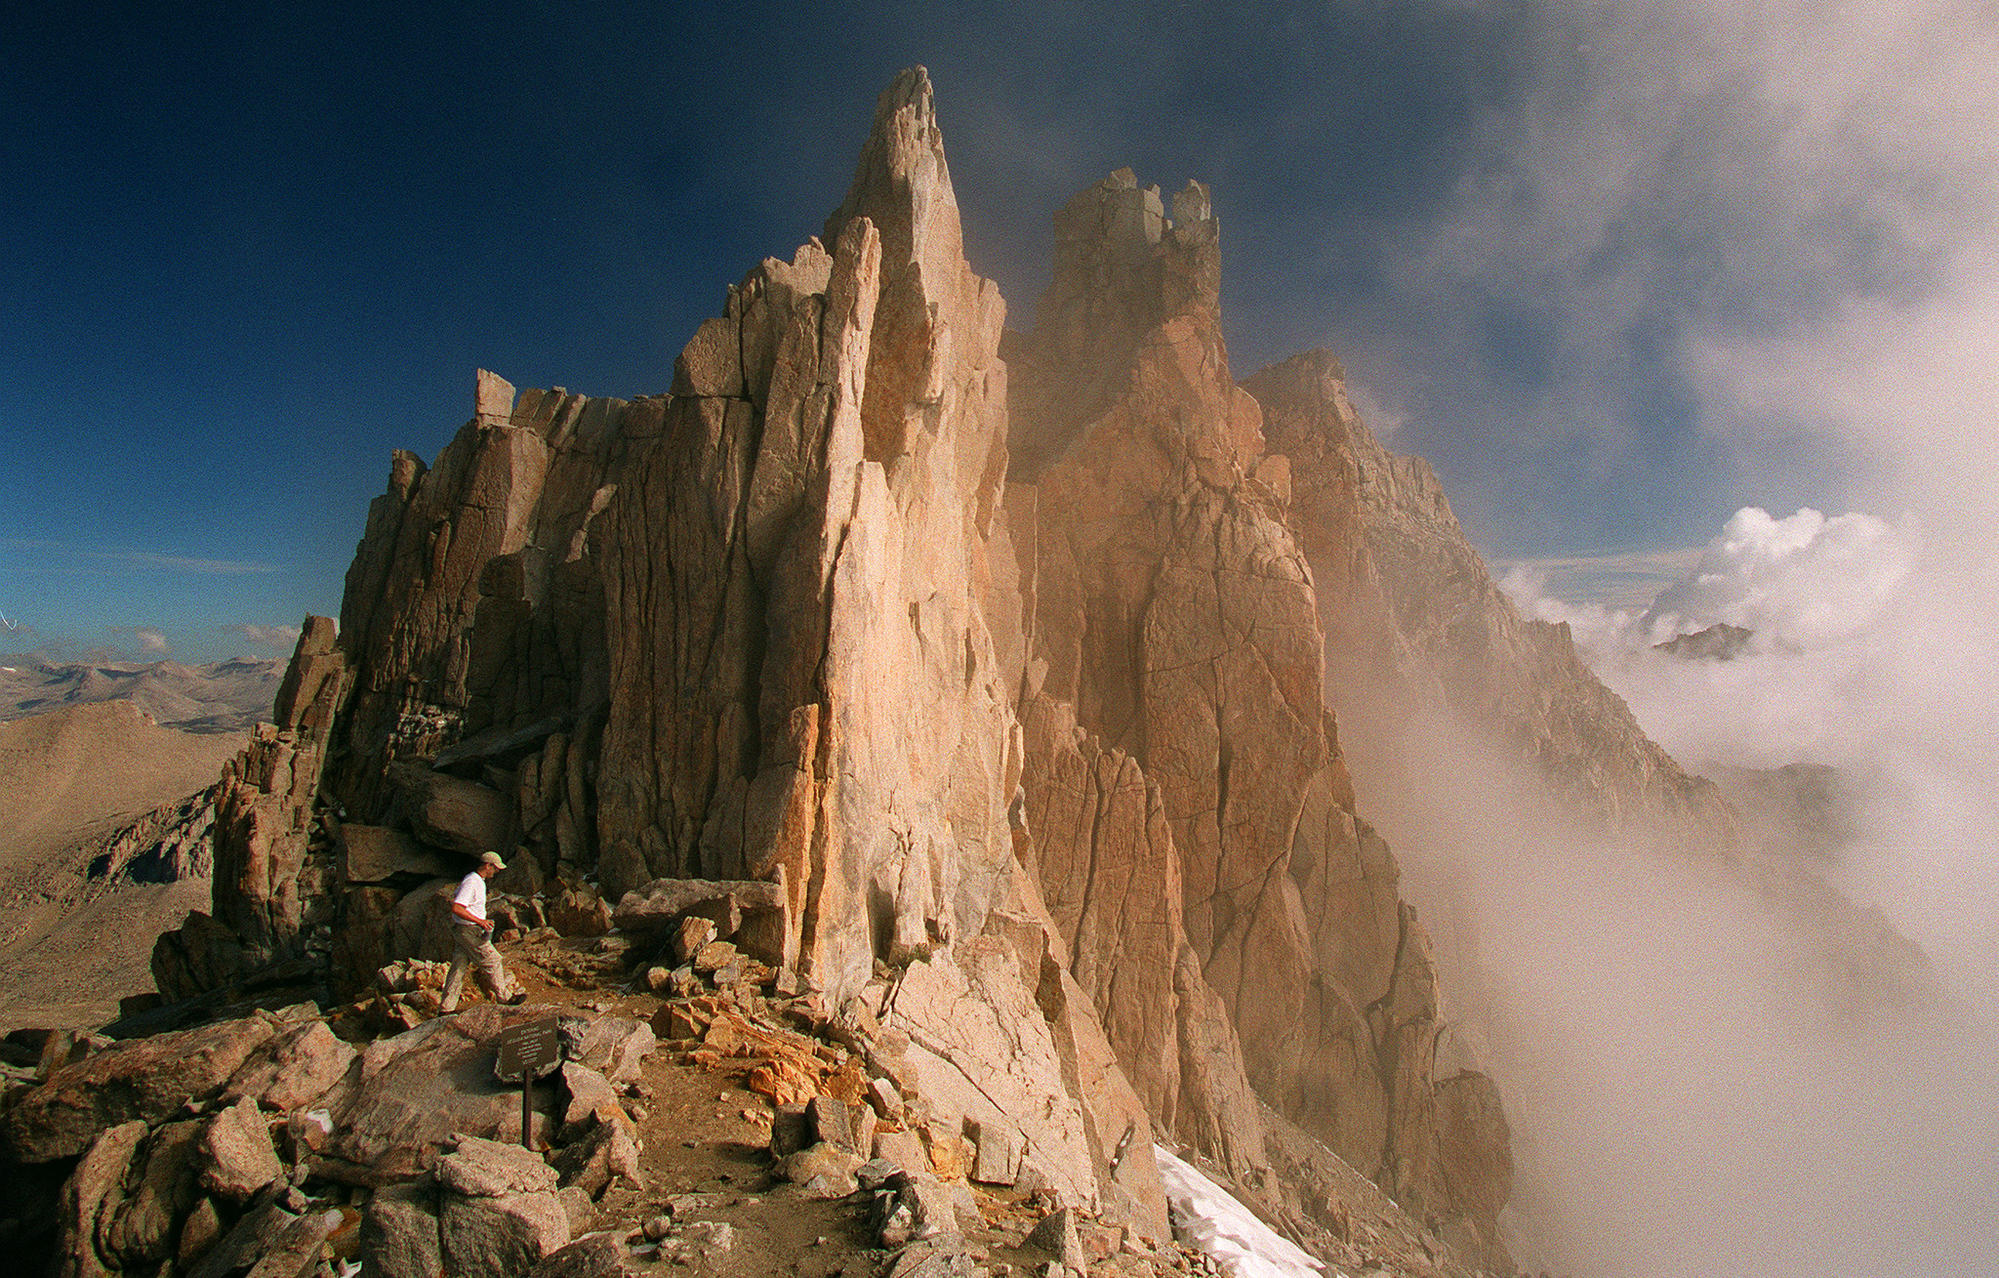 Anacleto loved the outdoors, including the majestic Mt. Whitney, which he climbed several times.